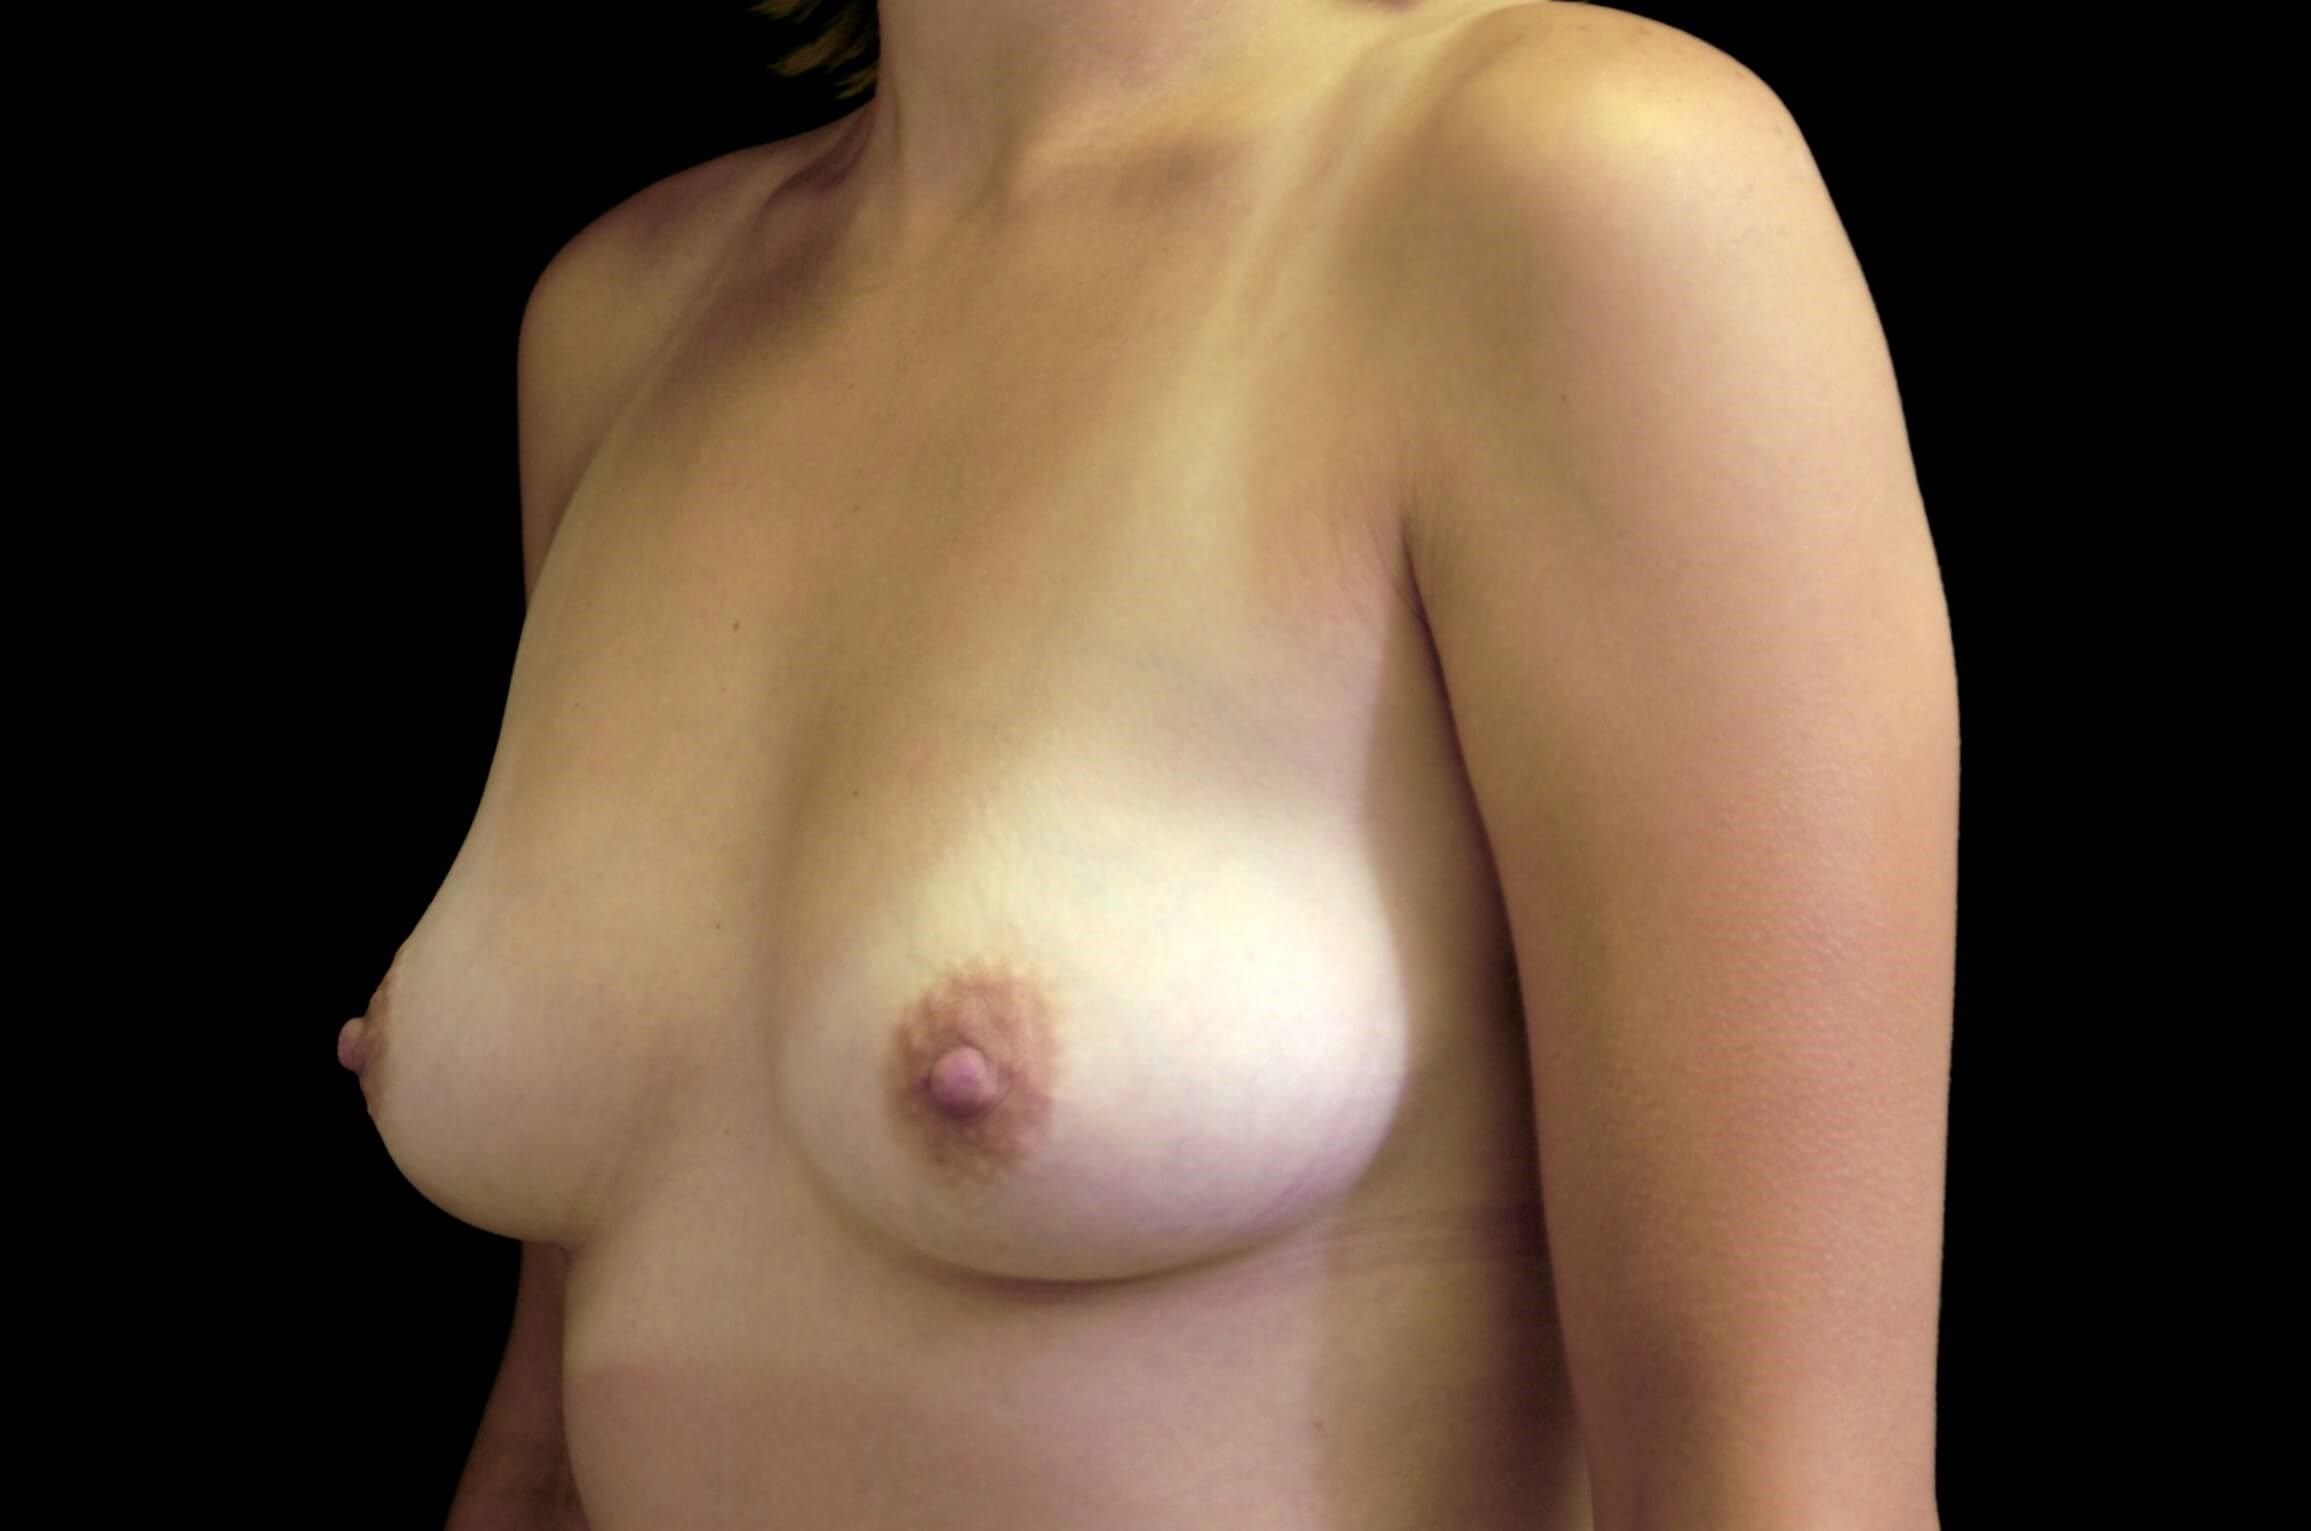 Breast Augmentation Procedure Before